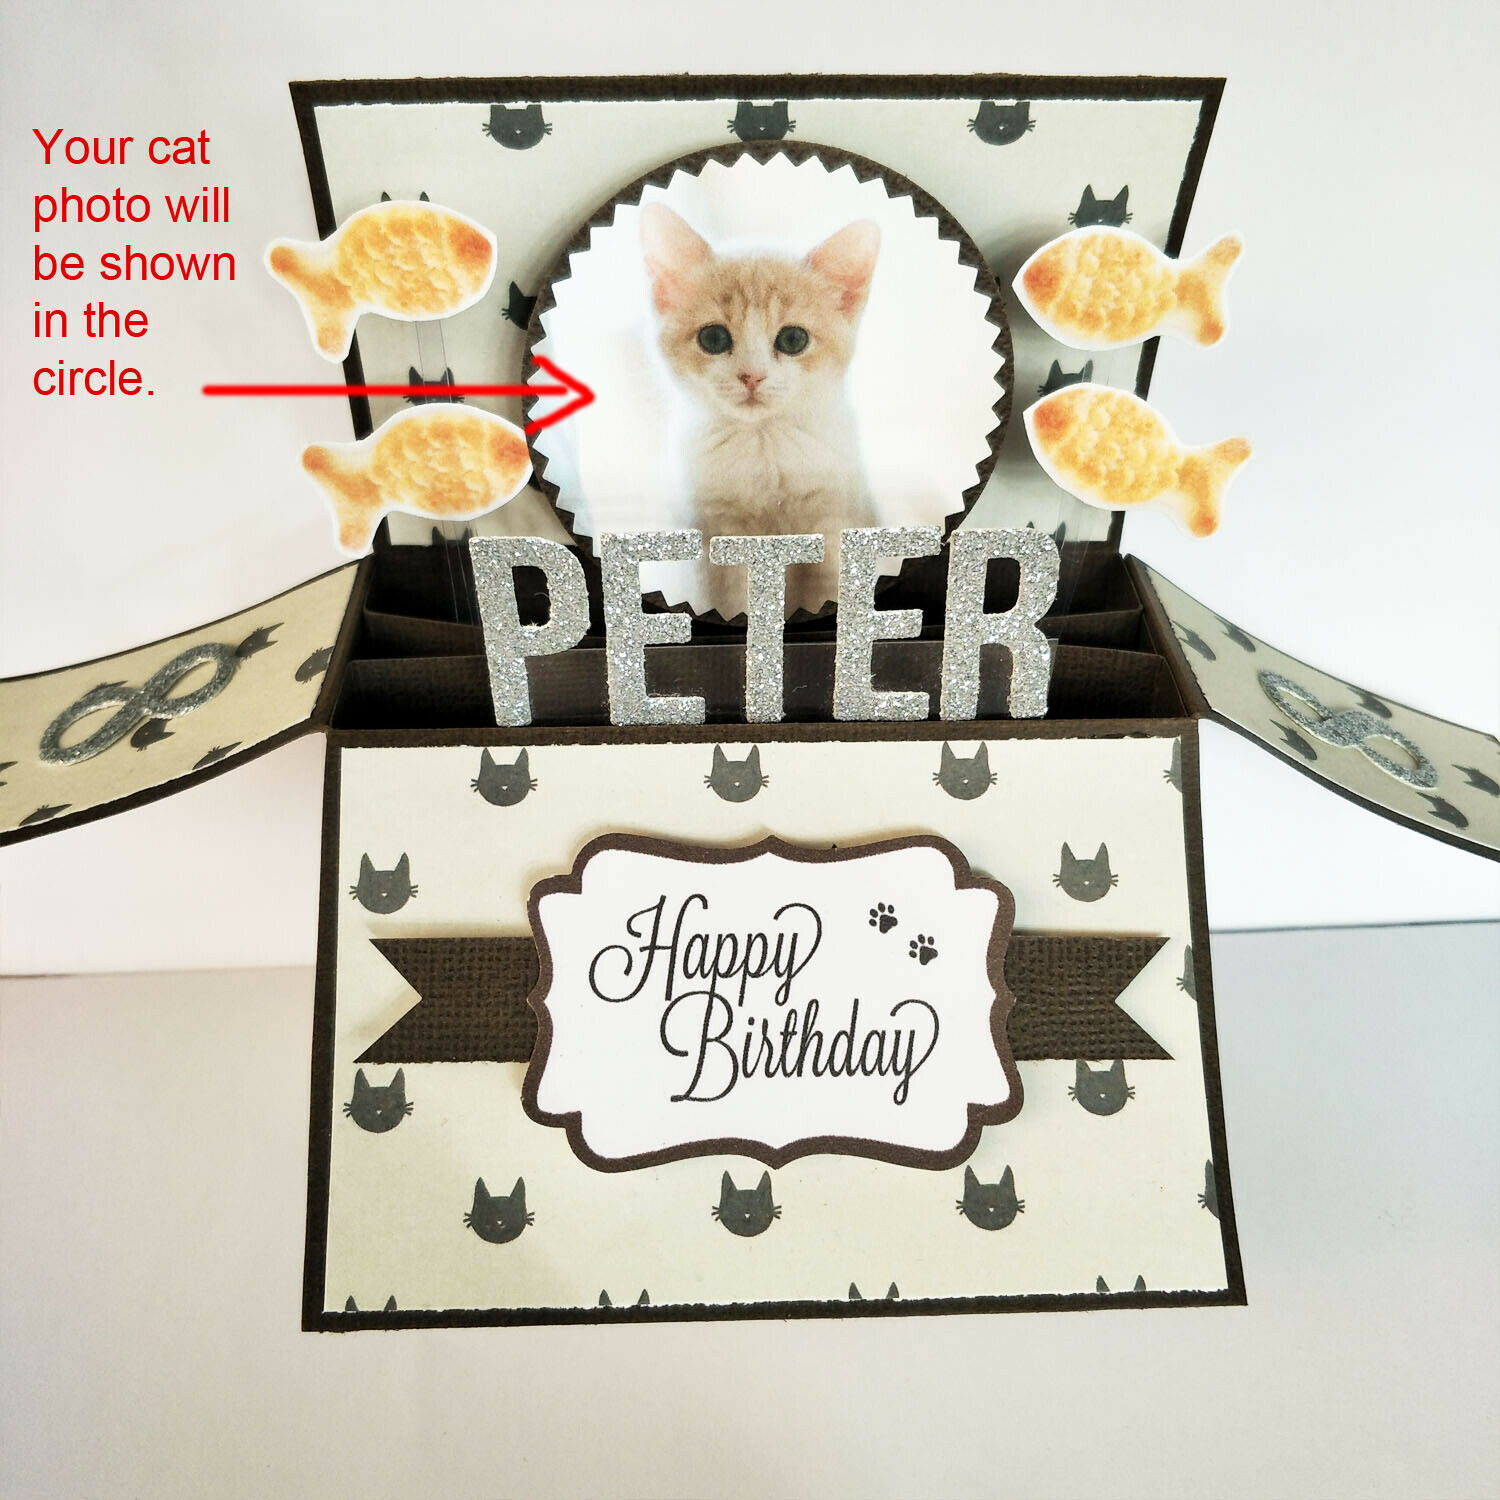 Handmade Name & Age Personalized birthday card pet birthday card cat kitten card - Your own cat photo